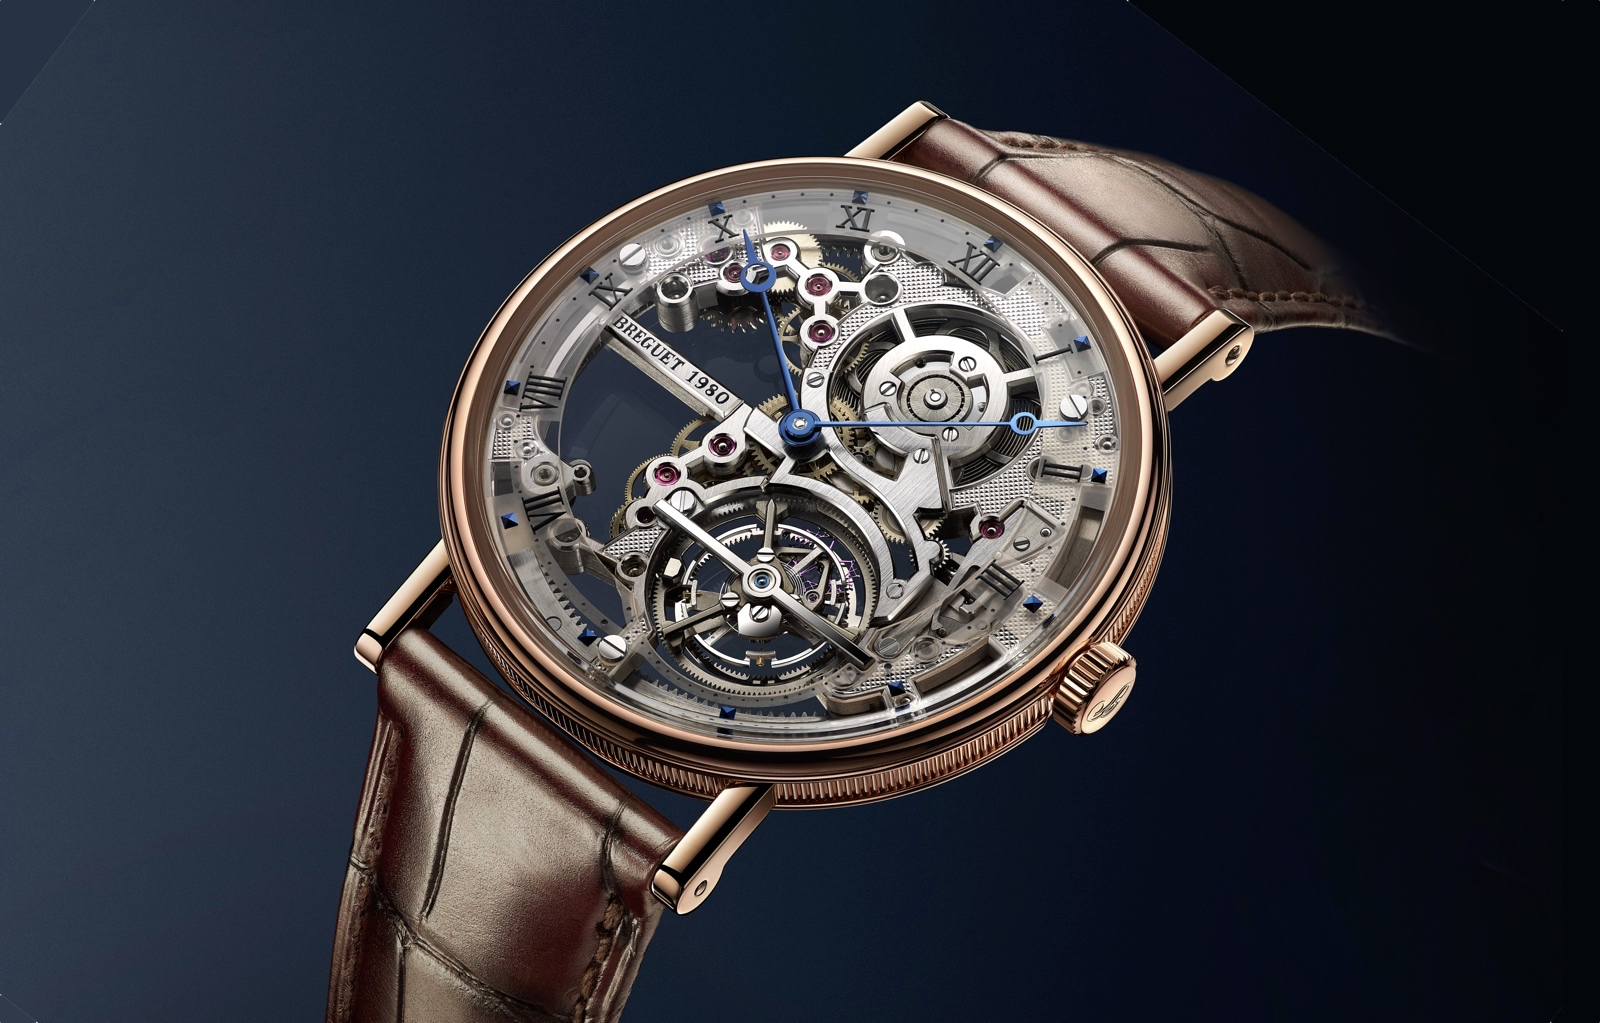 Breguet en el Time to Move 2019 - Classique Tourbillon SQ 5395